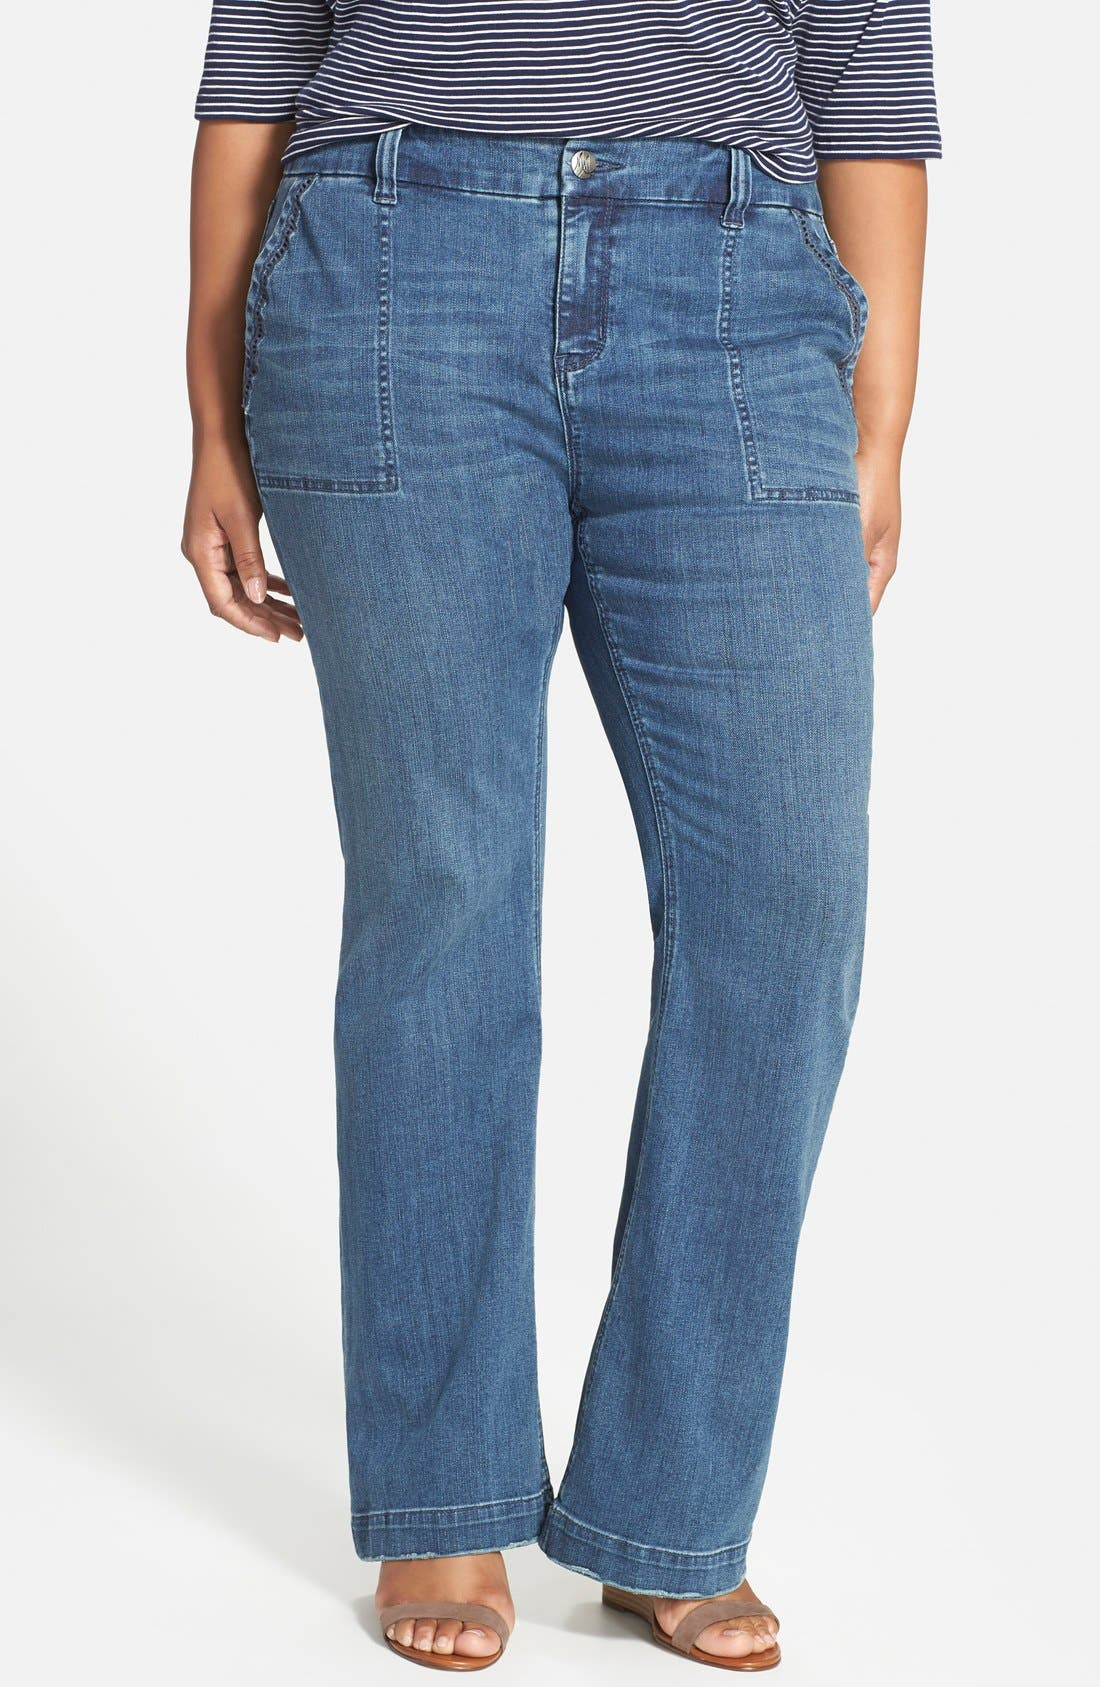 Main Image - Melissa McCarthy Seven7 Stretch Flare Leg Jeans (Deluxe Blue) (Plus Size)